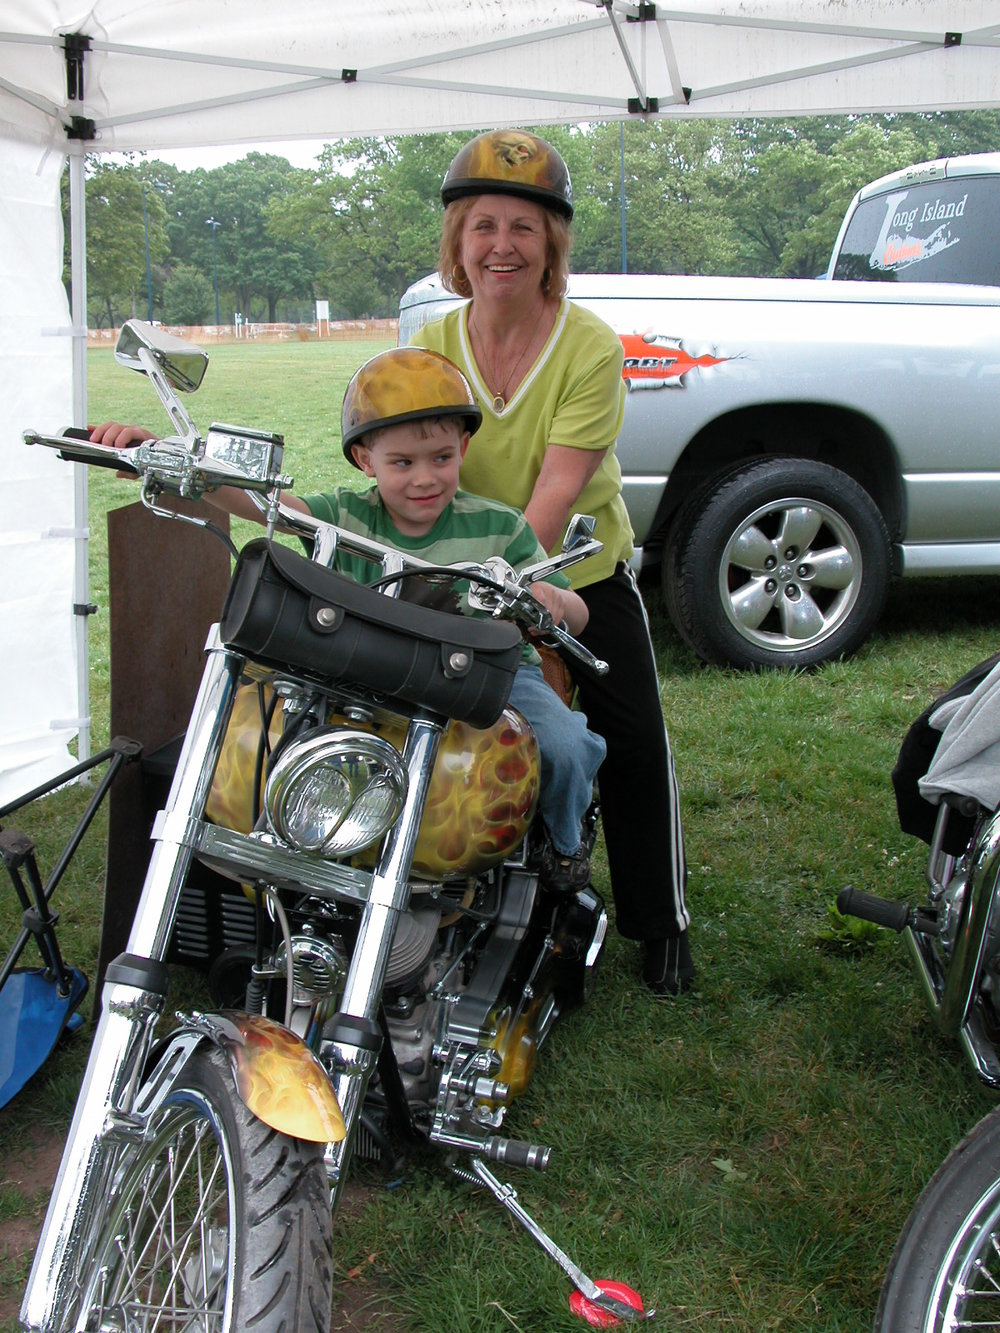 Mom & J on bike.jpg